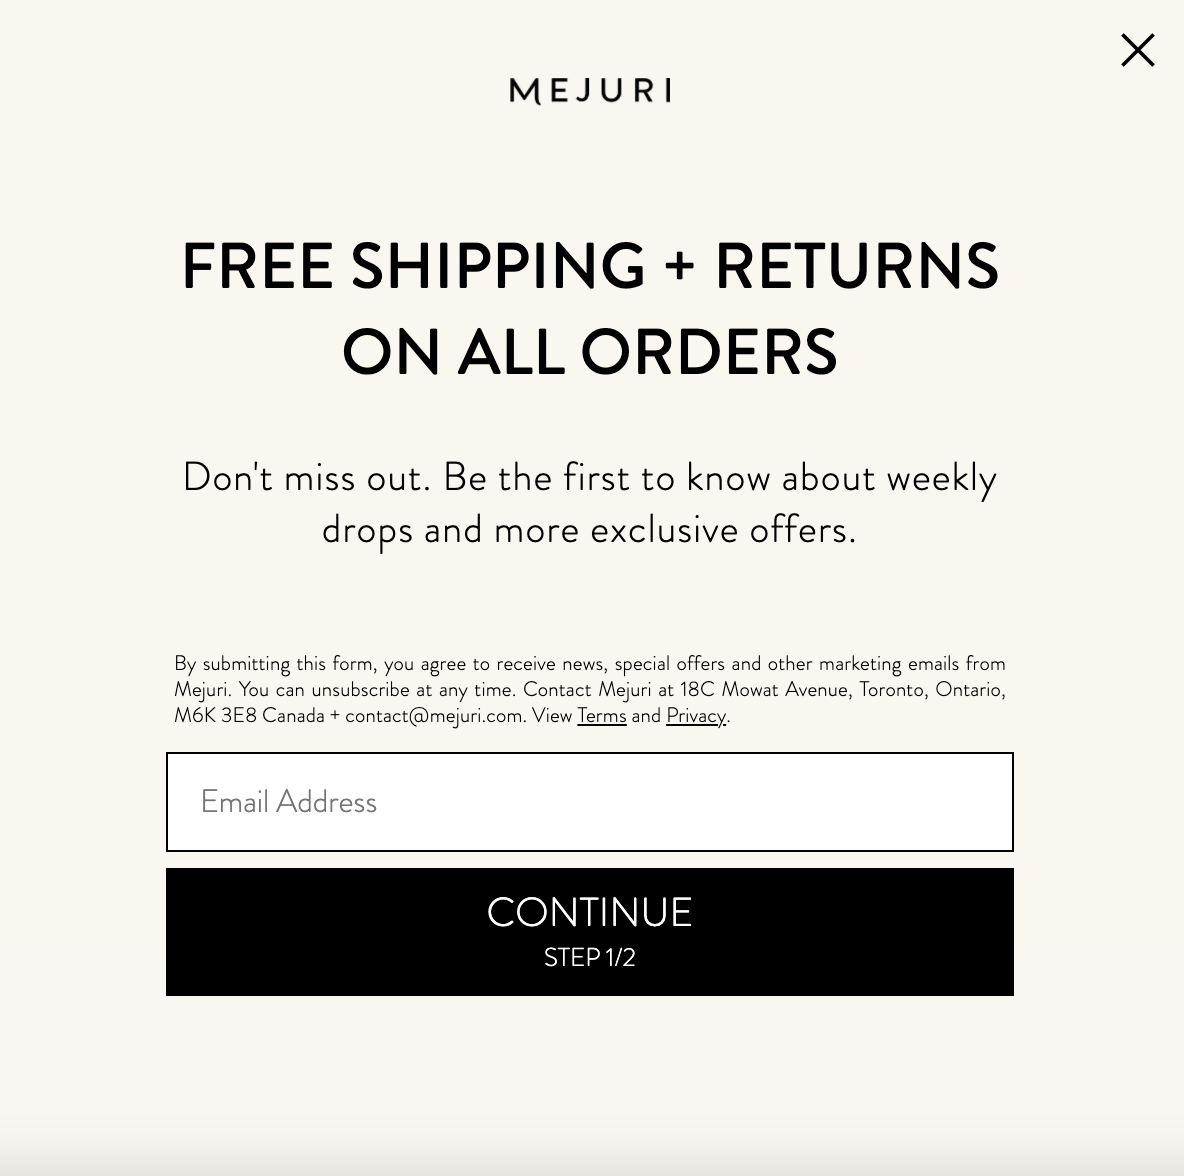 Mejuri email marketing communications opt-in example